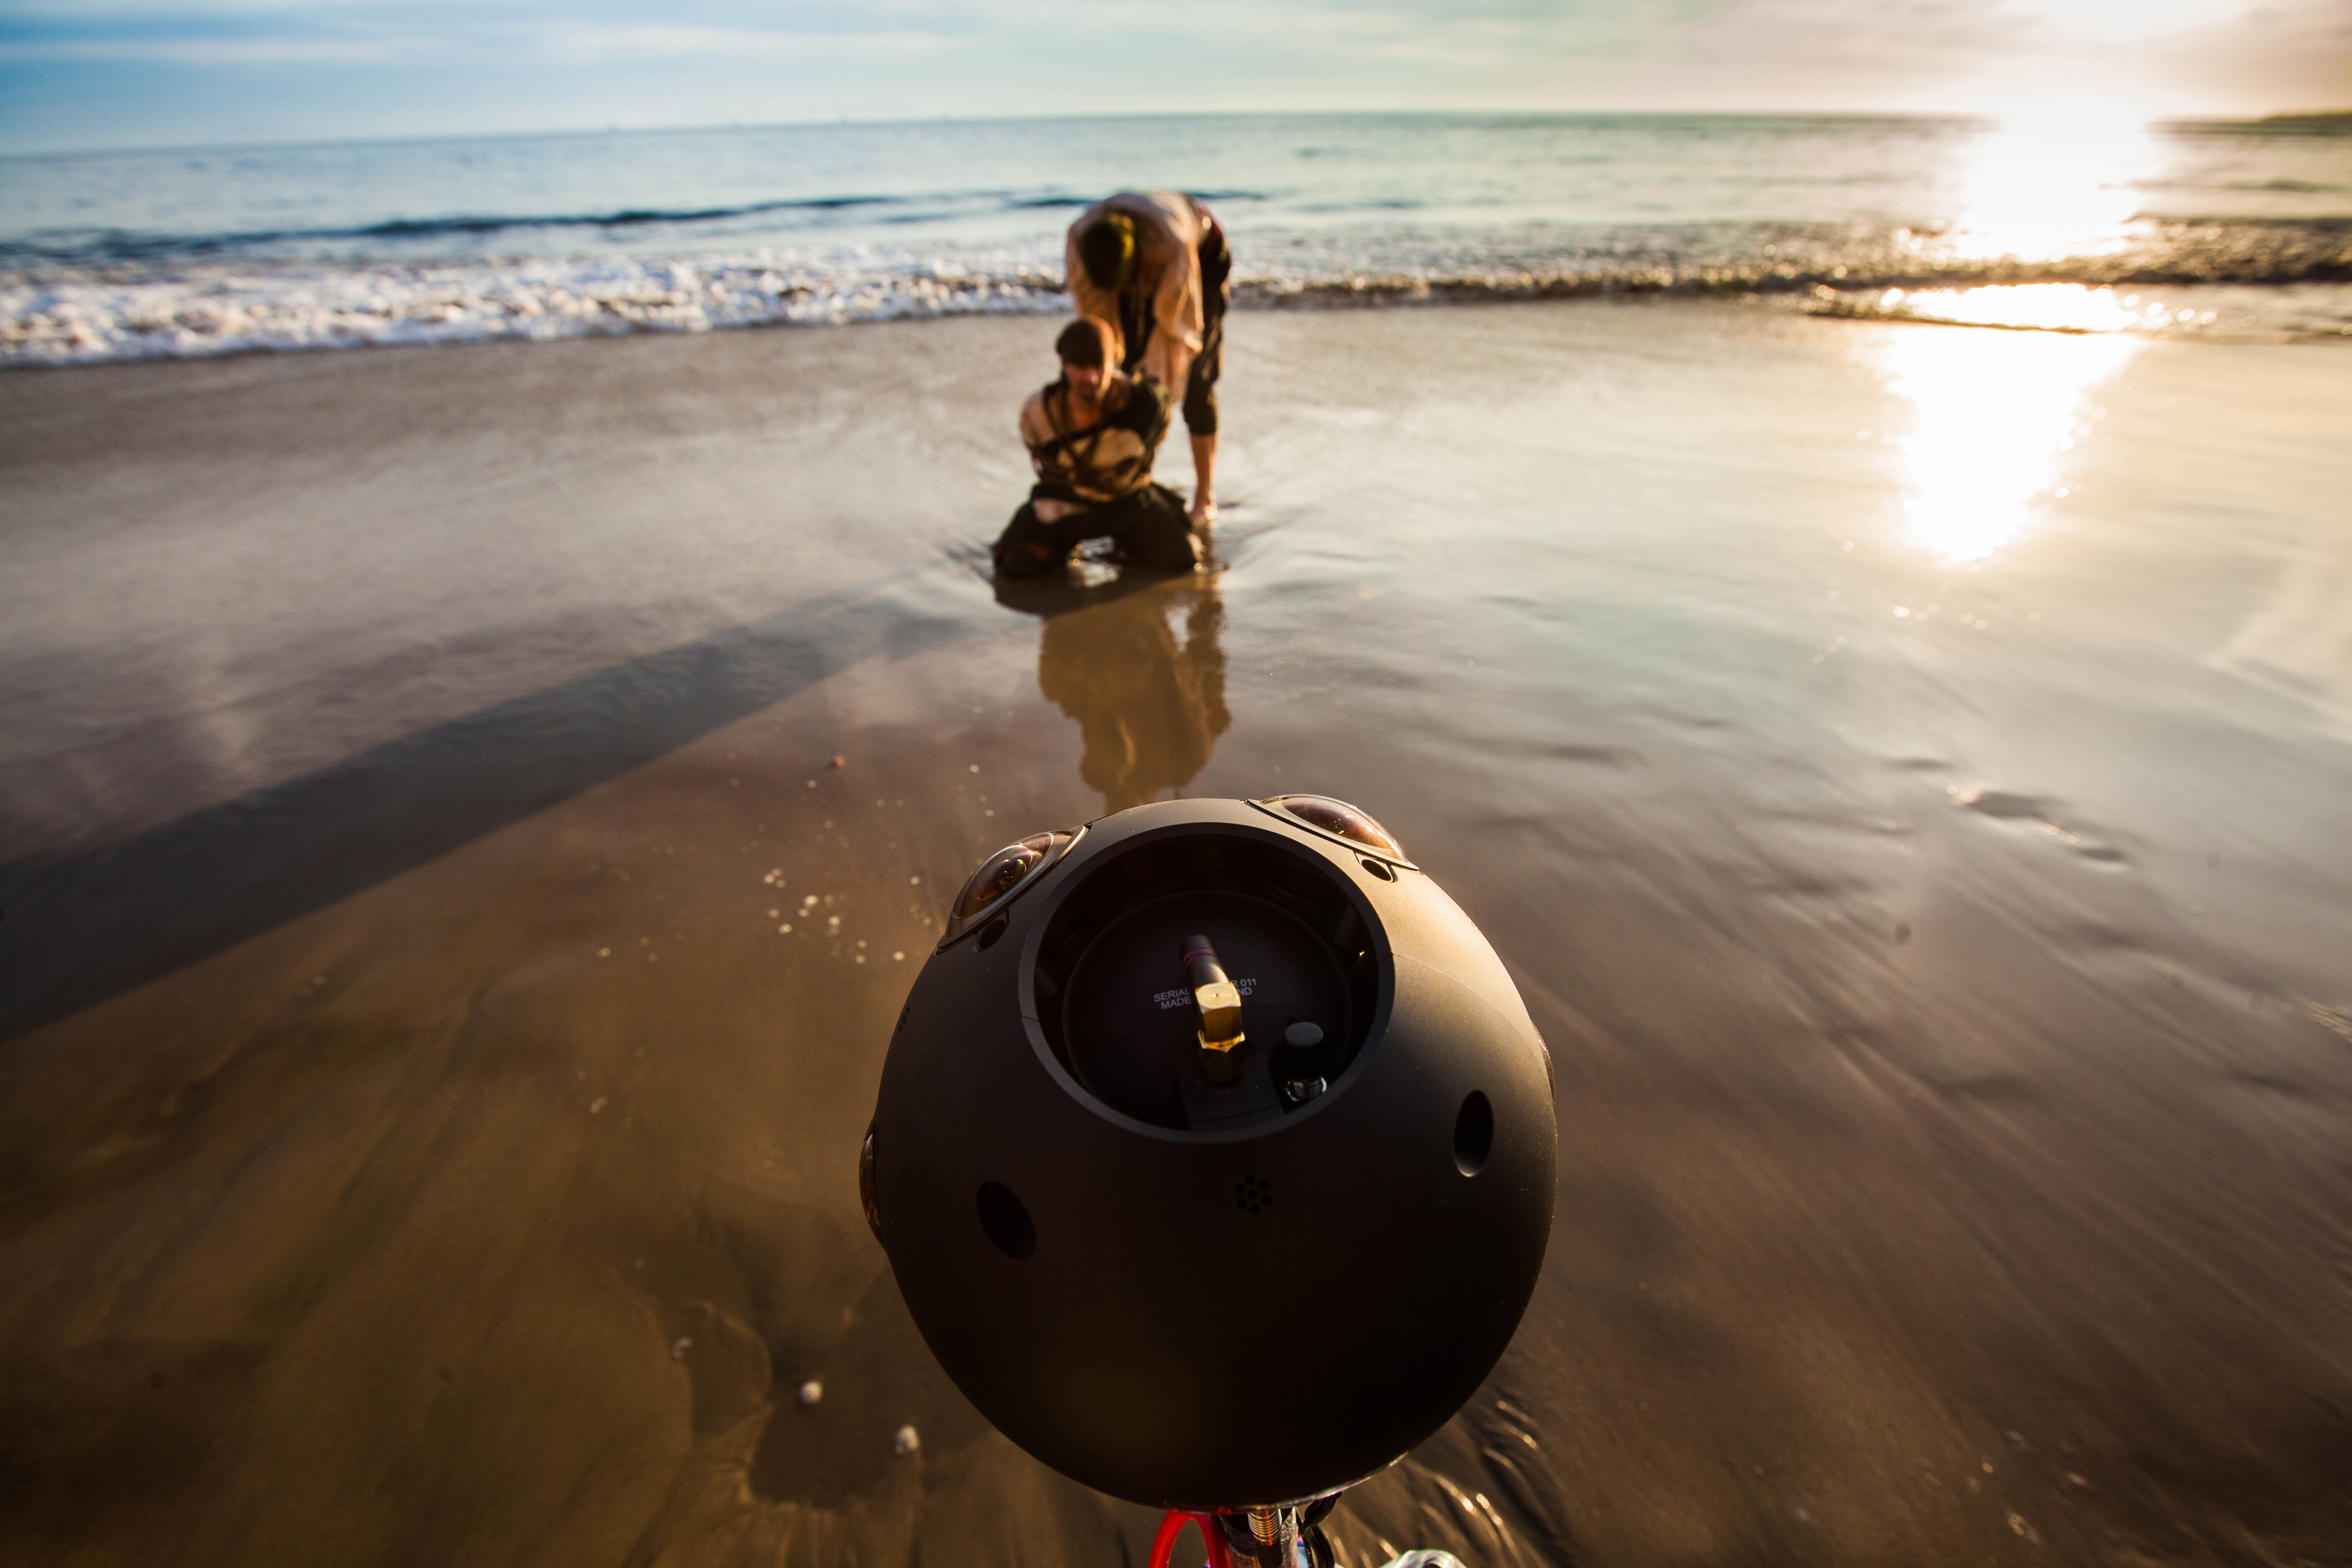 Nokia Technologies' Ozo 360-degree camera was used to film this Mutiny VR narrative sequencel